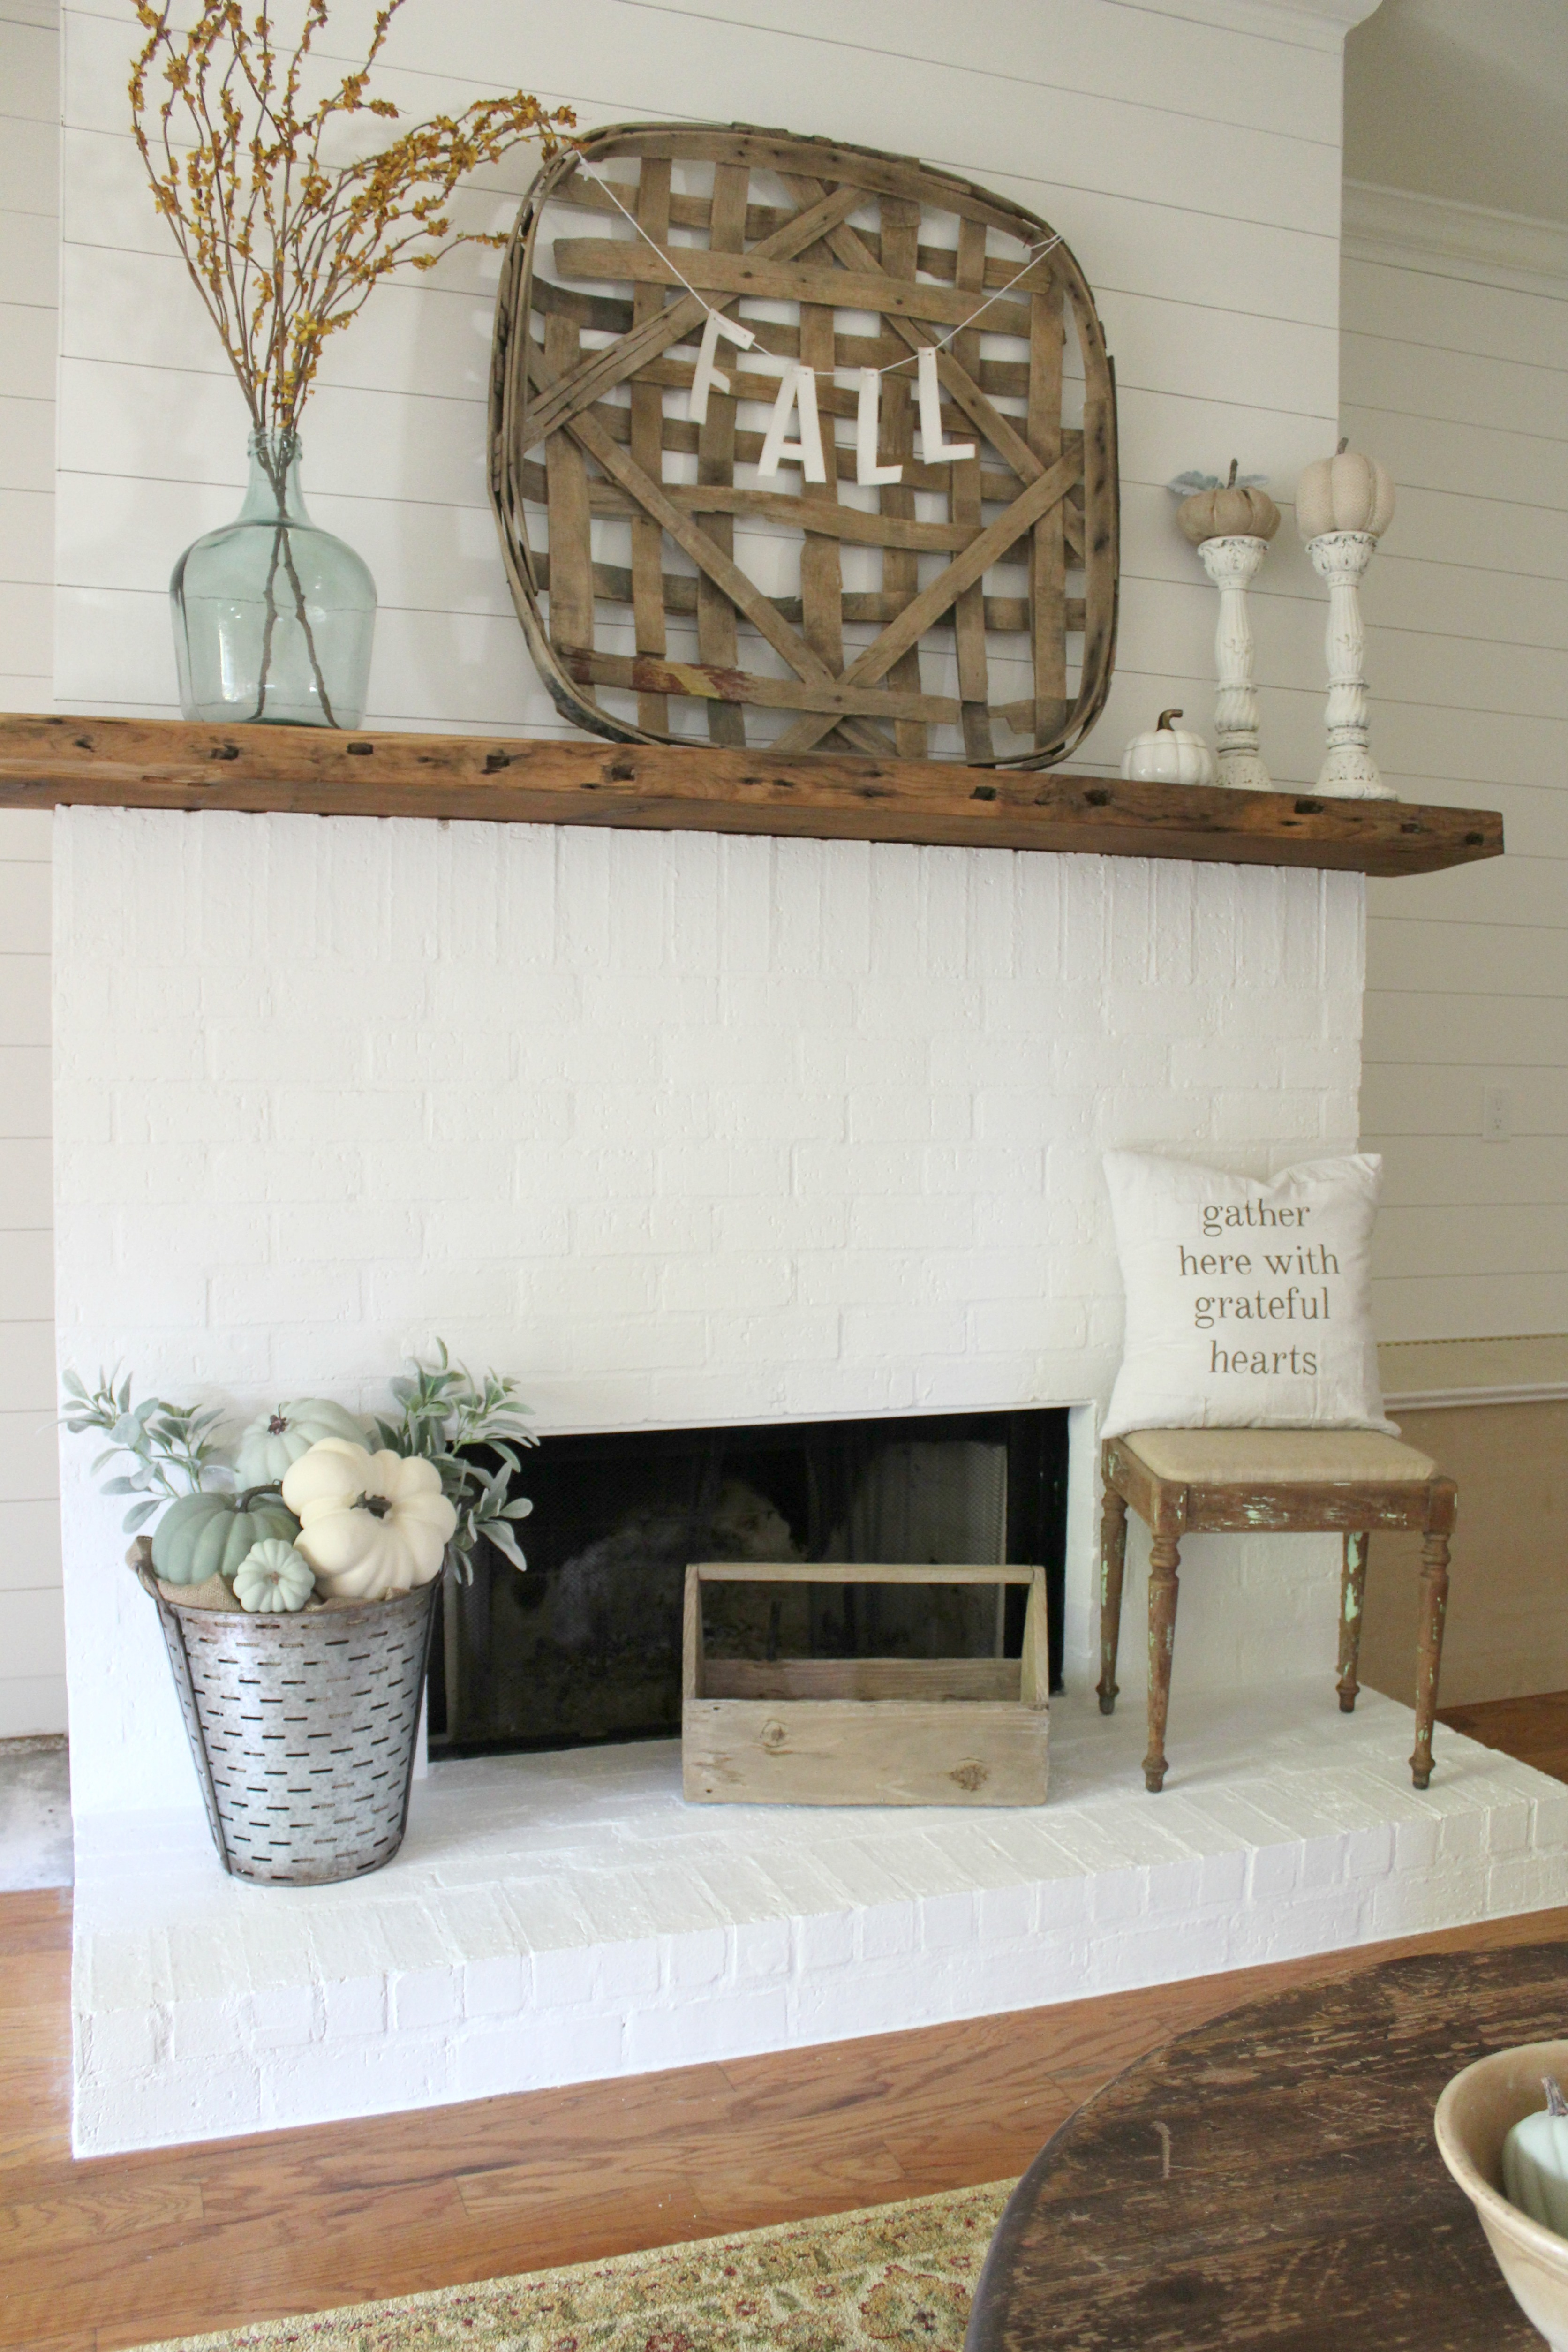 Learn how to create a farmhouse living room on a tight budget. A DIY renovation with lots of vintage charm and character.